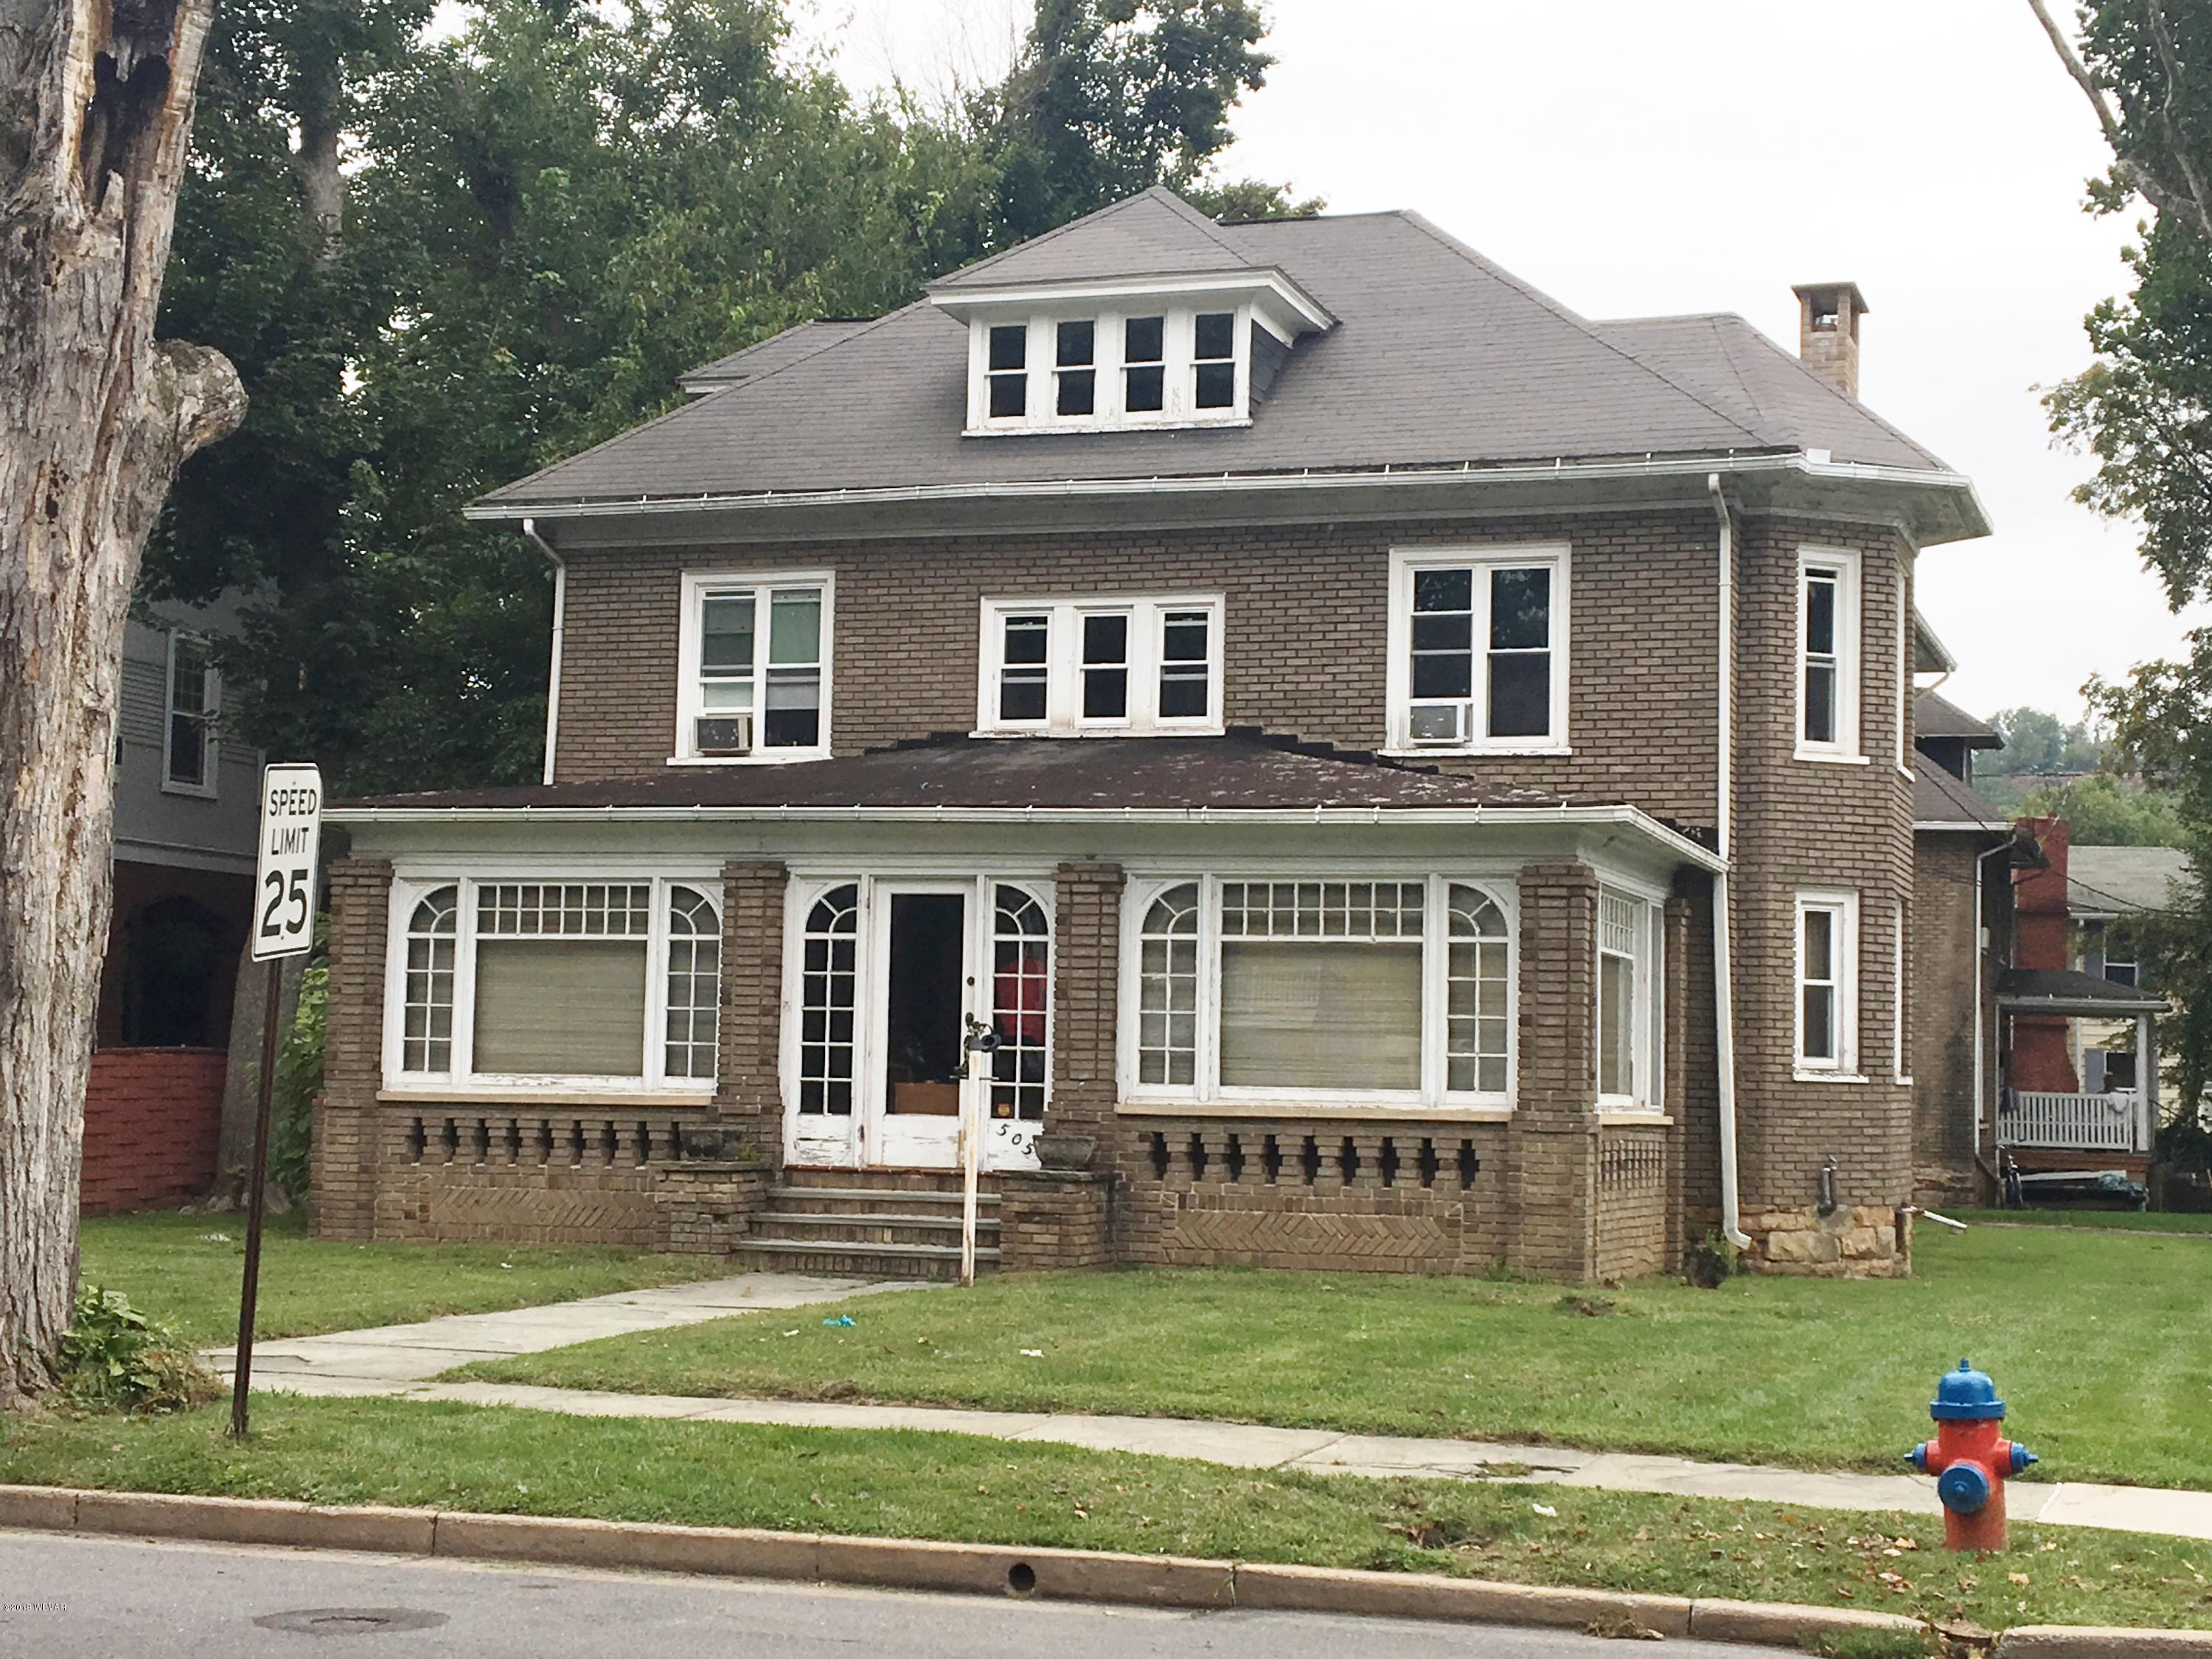 505 MAIN STREET, Lock Haven, PA 17745, 5 Bedrooms Bedrooms, ,2 BathroomsBathrooms,Residential,For sale,MAIN,WB-87158